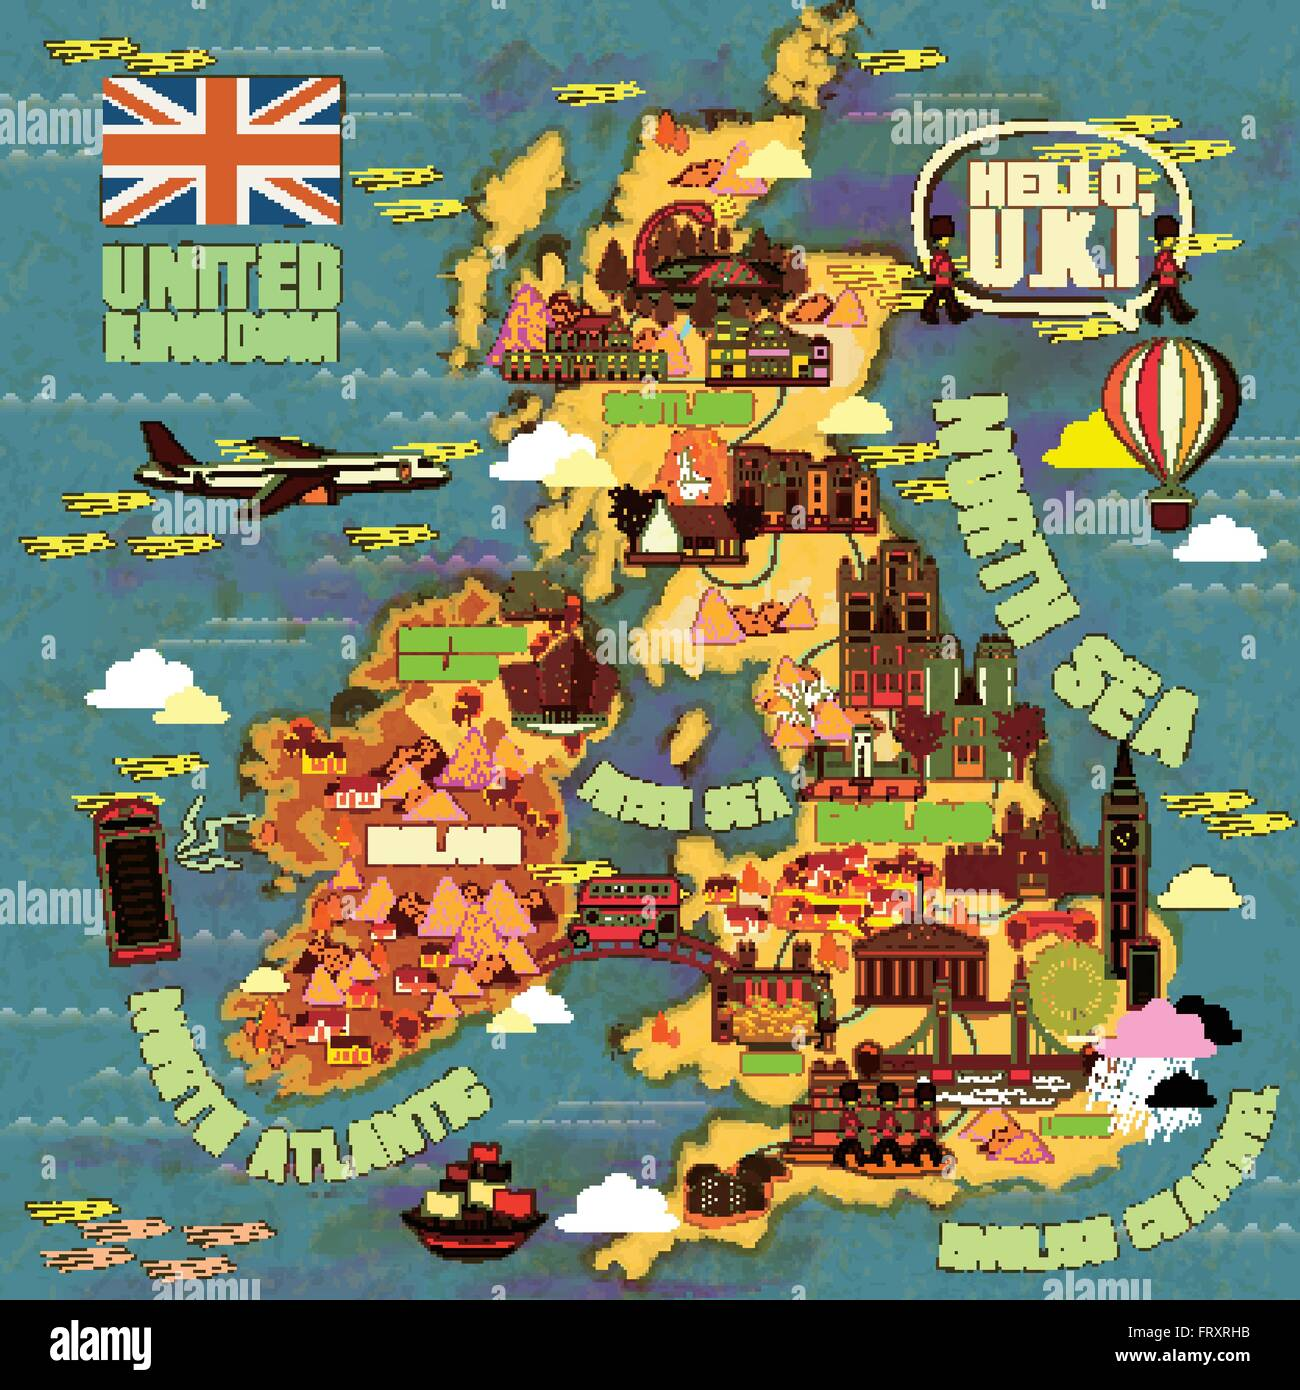 lovely united kingdom travel map with attractions icon